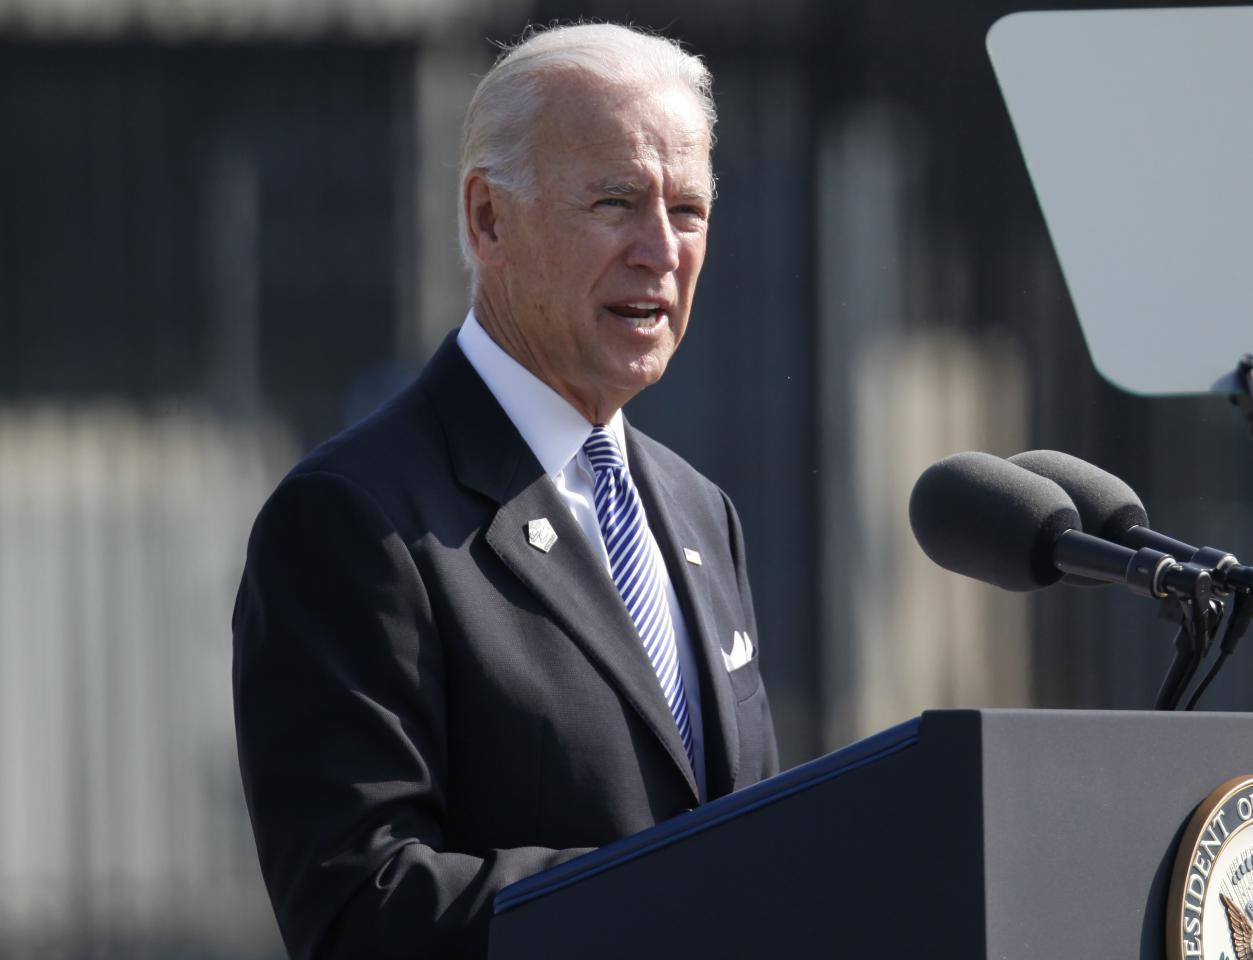 Vice President Joe Biden speaks during the ceremony marking the 10th anniversary of the September 11 attacks at the Pentagon in Washington, Sunday, Sept. 11, 2011. (AP Photo/Charles Dharapak)